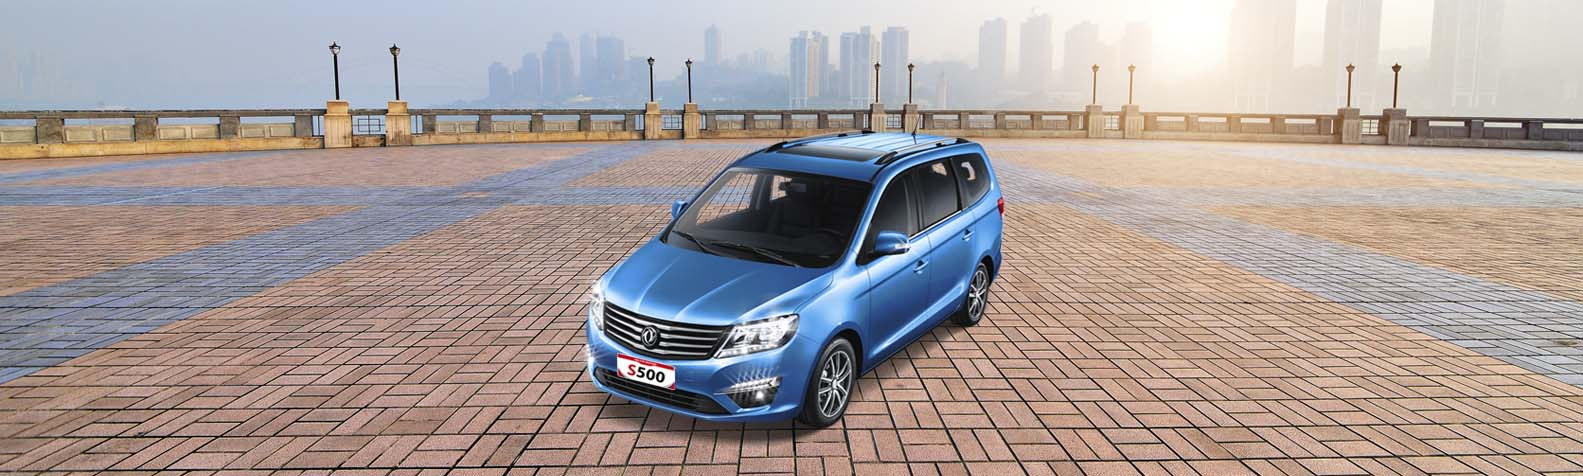 DONGFENG_JOYEAR_S500_